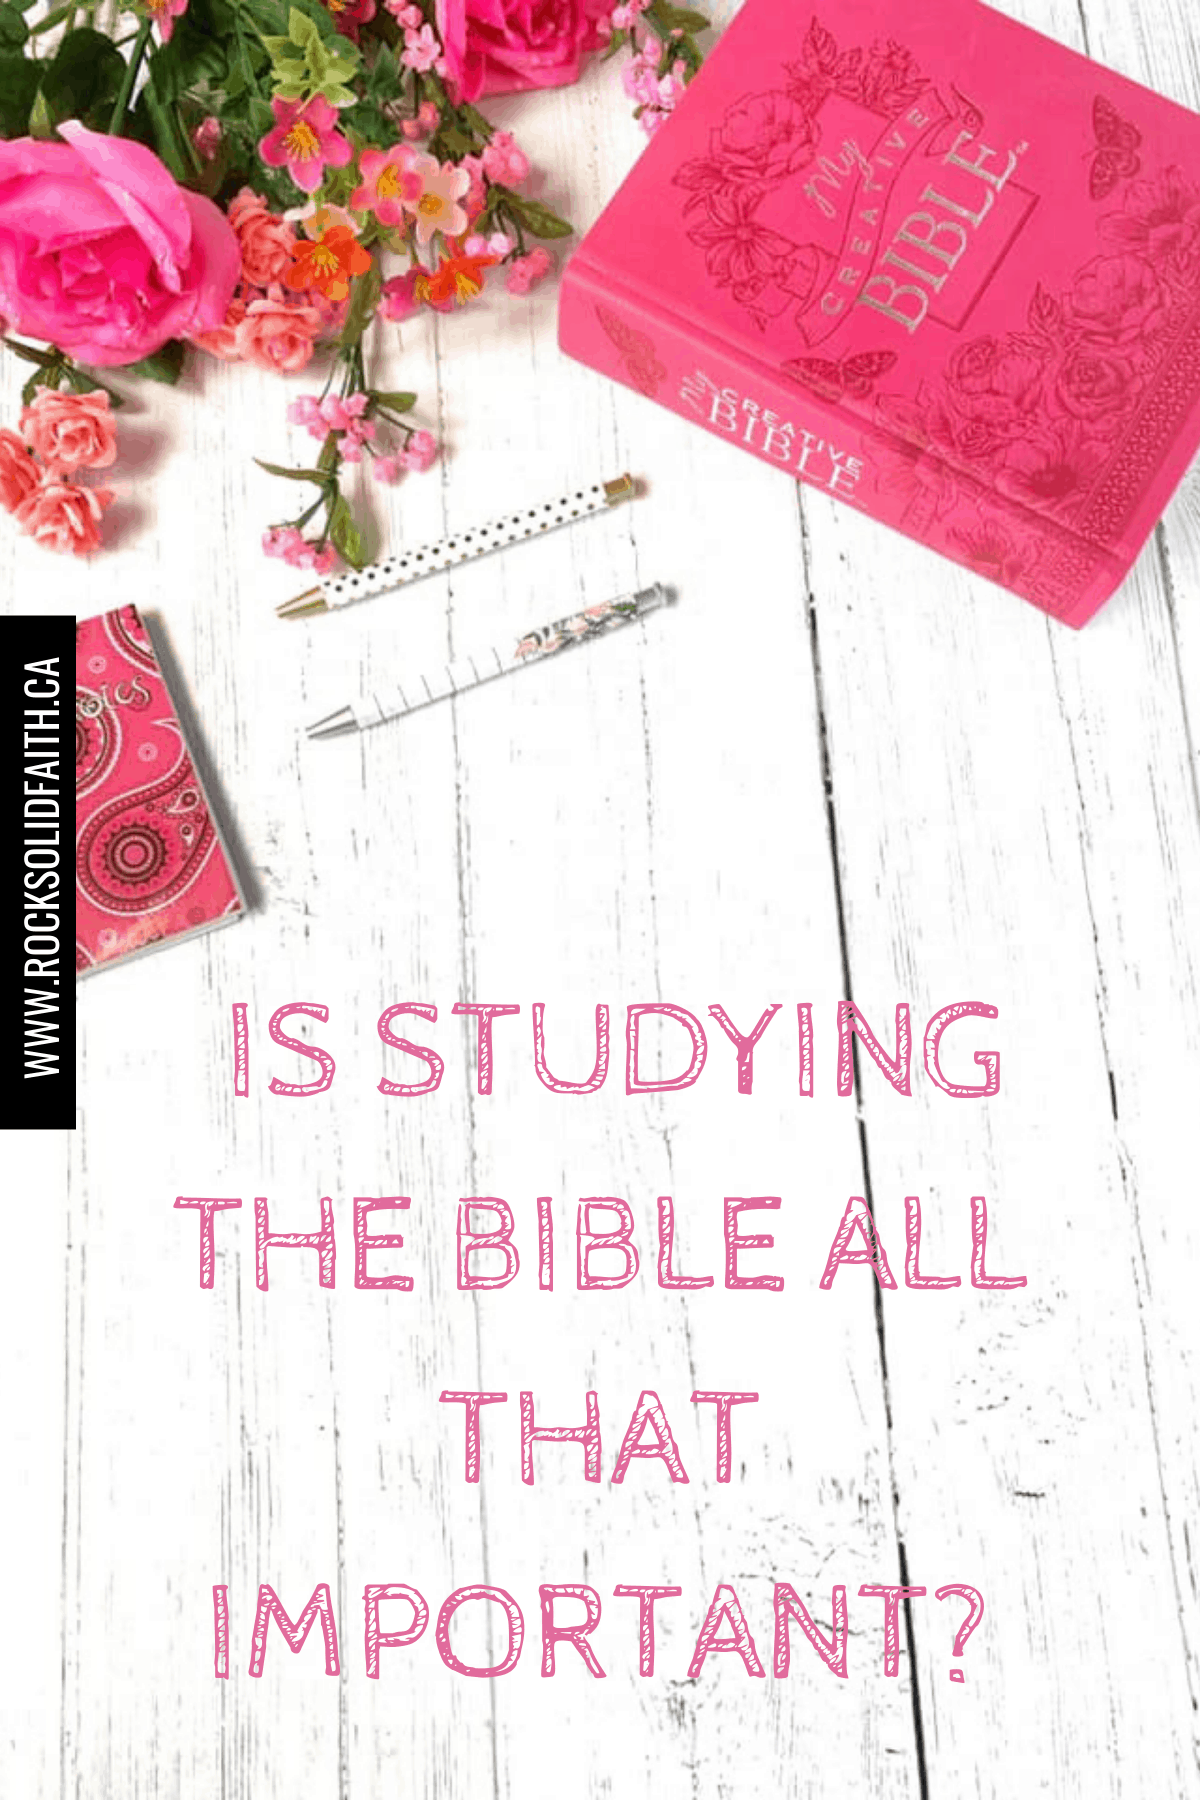 importance of studying the Bible